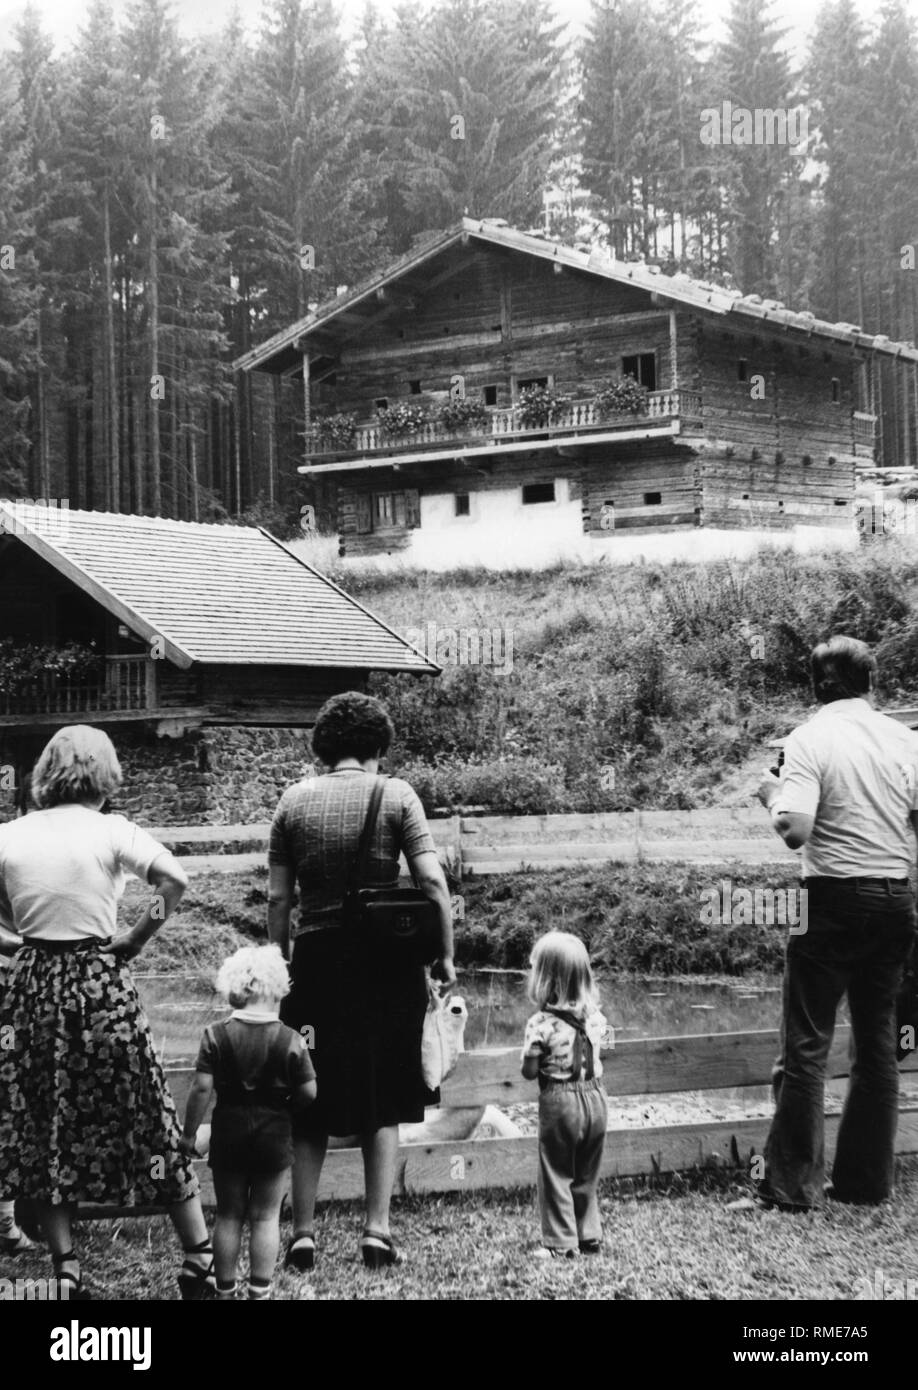 Bavarian Forest - the Tittling open-air museum in the Bavarian Forest. The building was built in 1664 and used for a long time as a school building. From Simbach, it was transferred to Tittling. - Stock Image